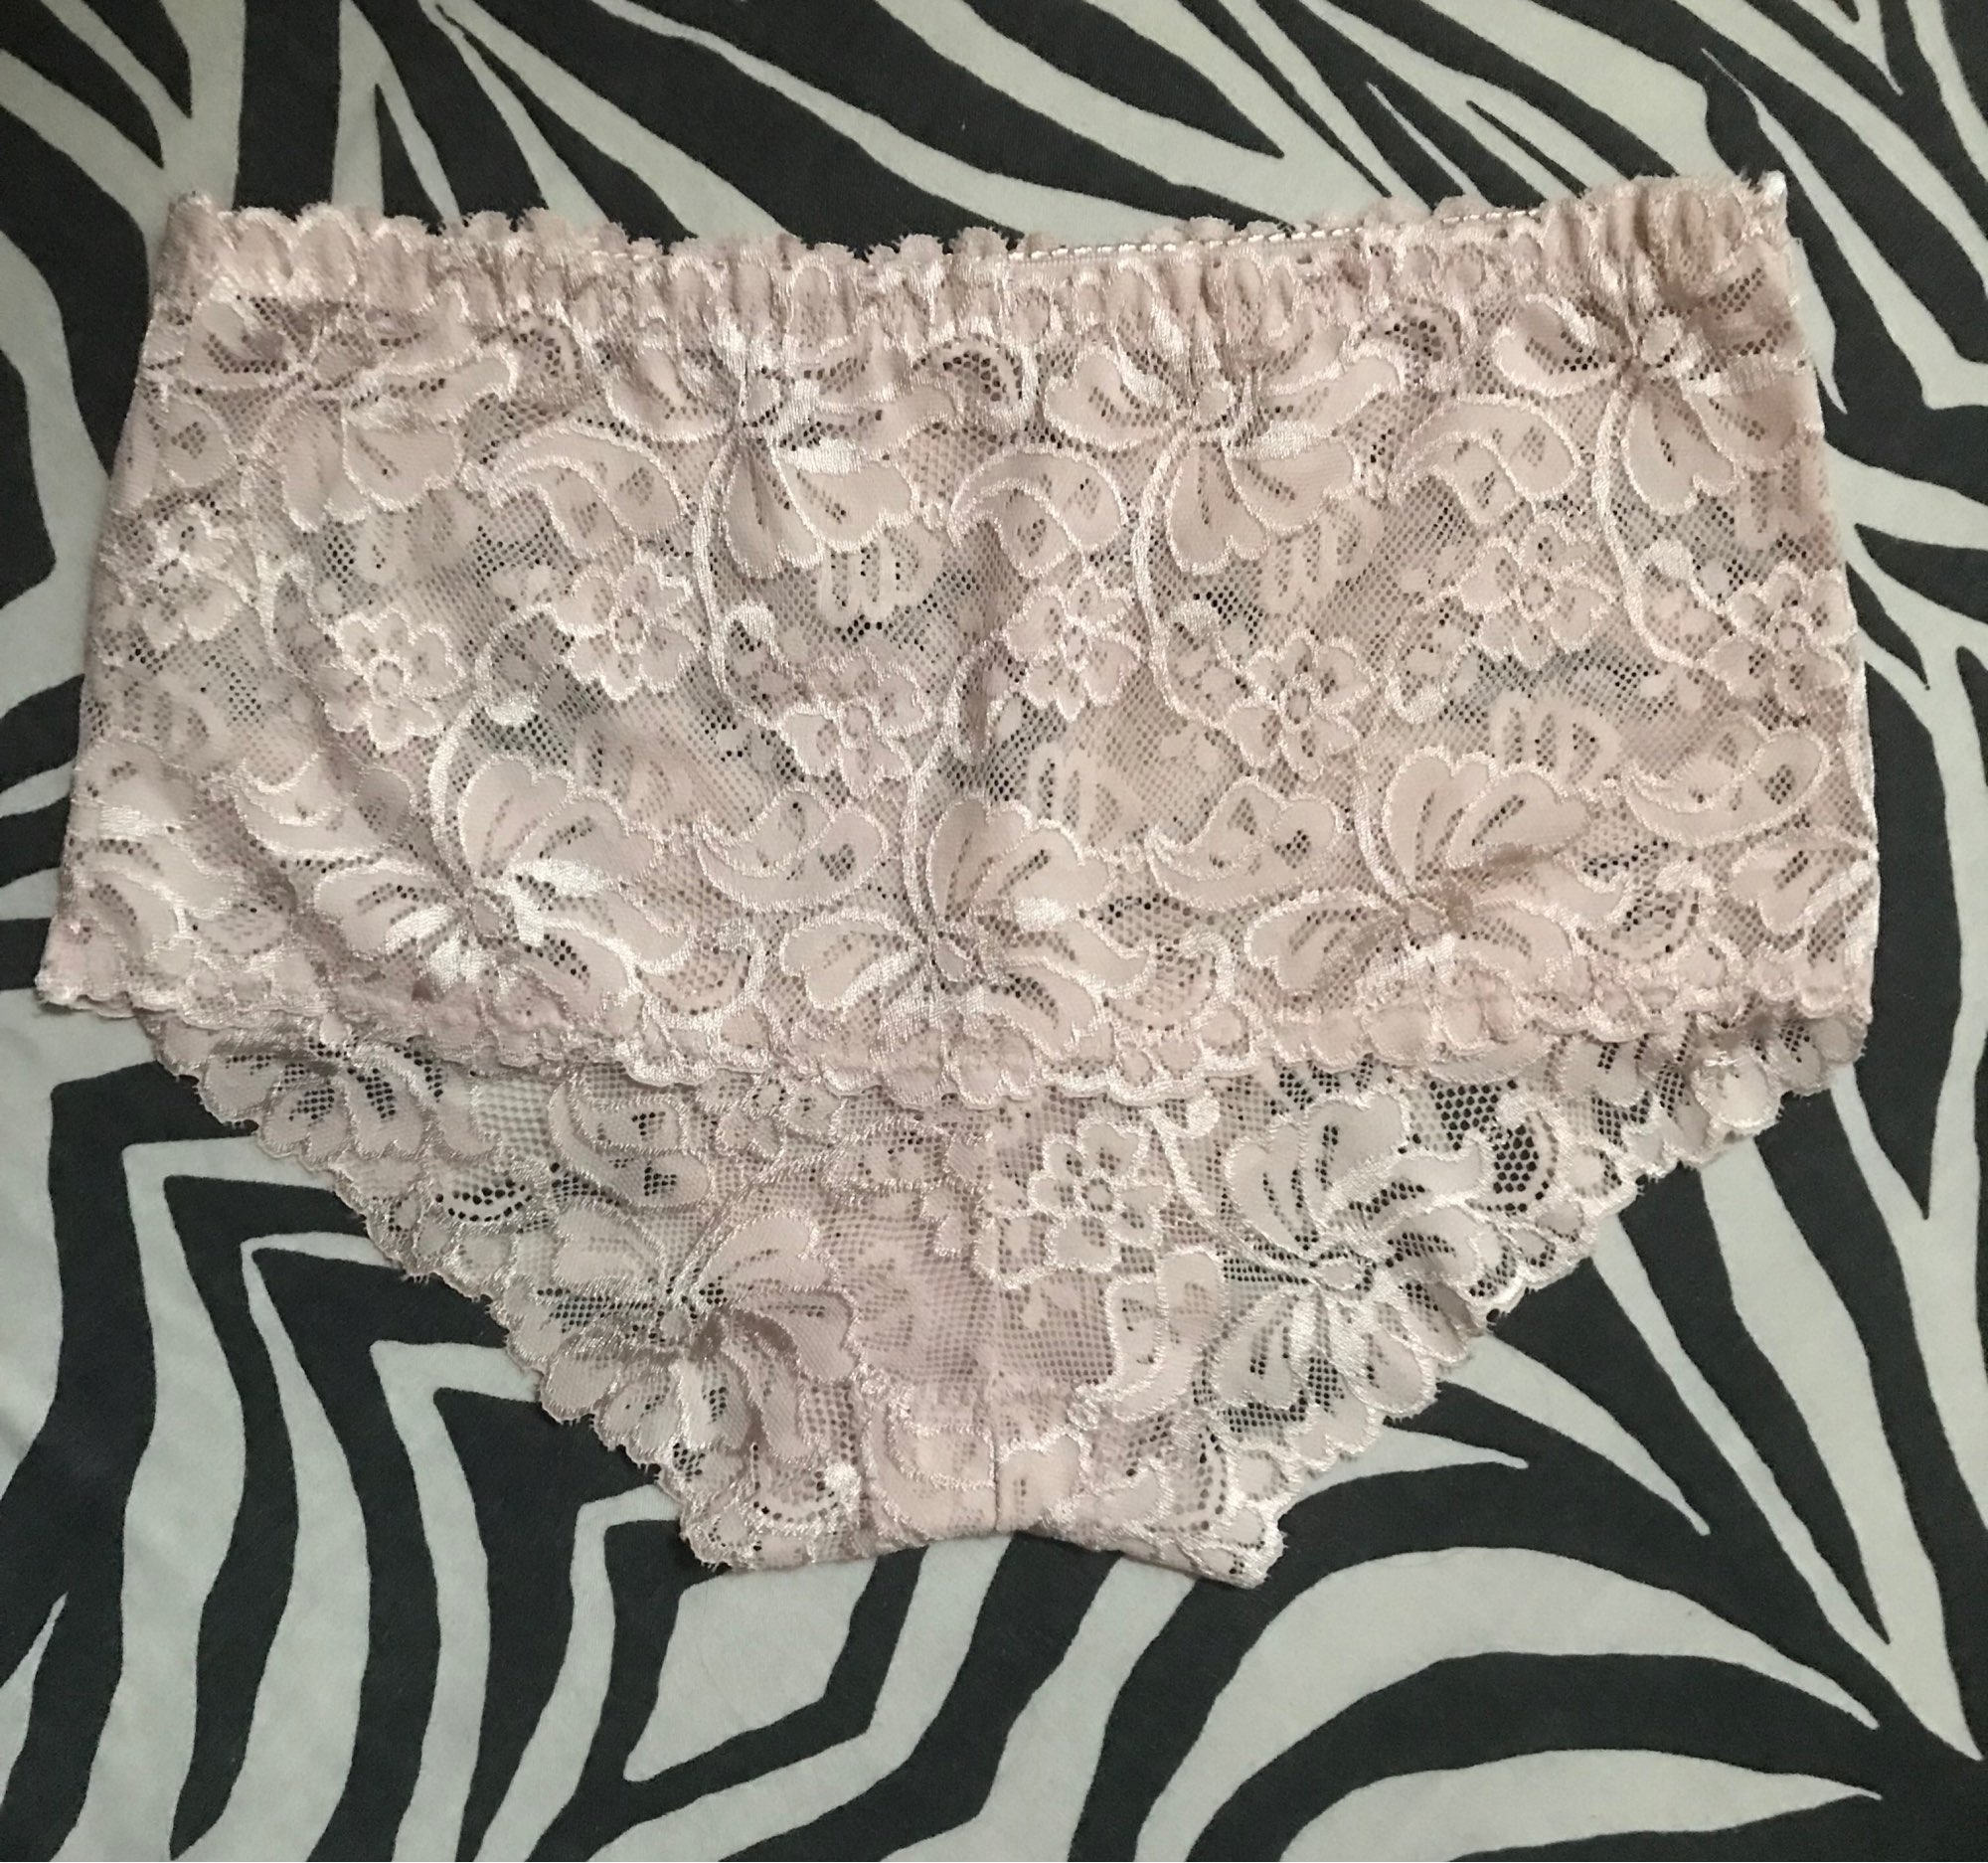 HW186 Women's Sexy Lace Underwear Briefs Female's Underpants Lingerie Woman Seamless Breathable Panties Ropa Interior Femenina photo review